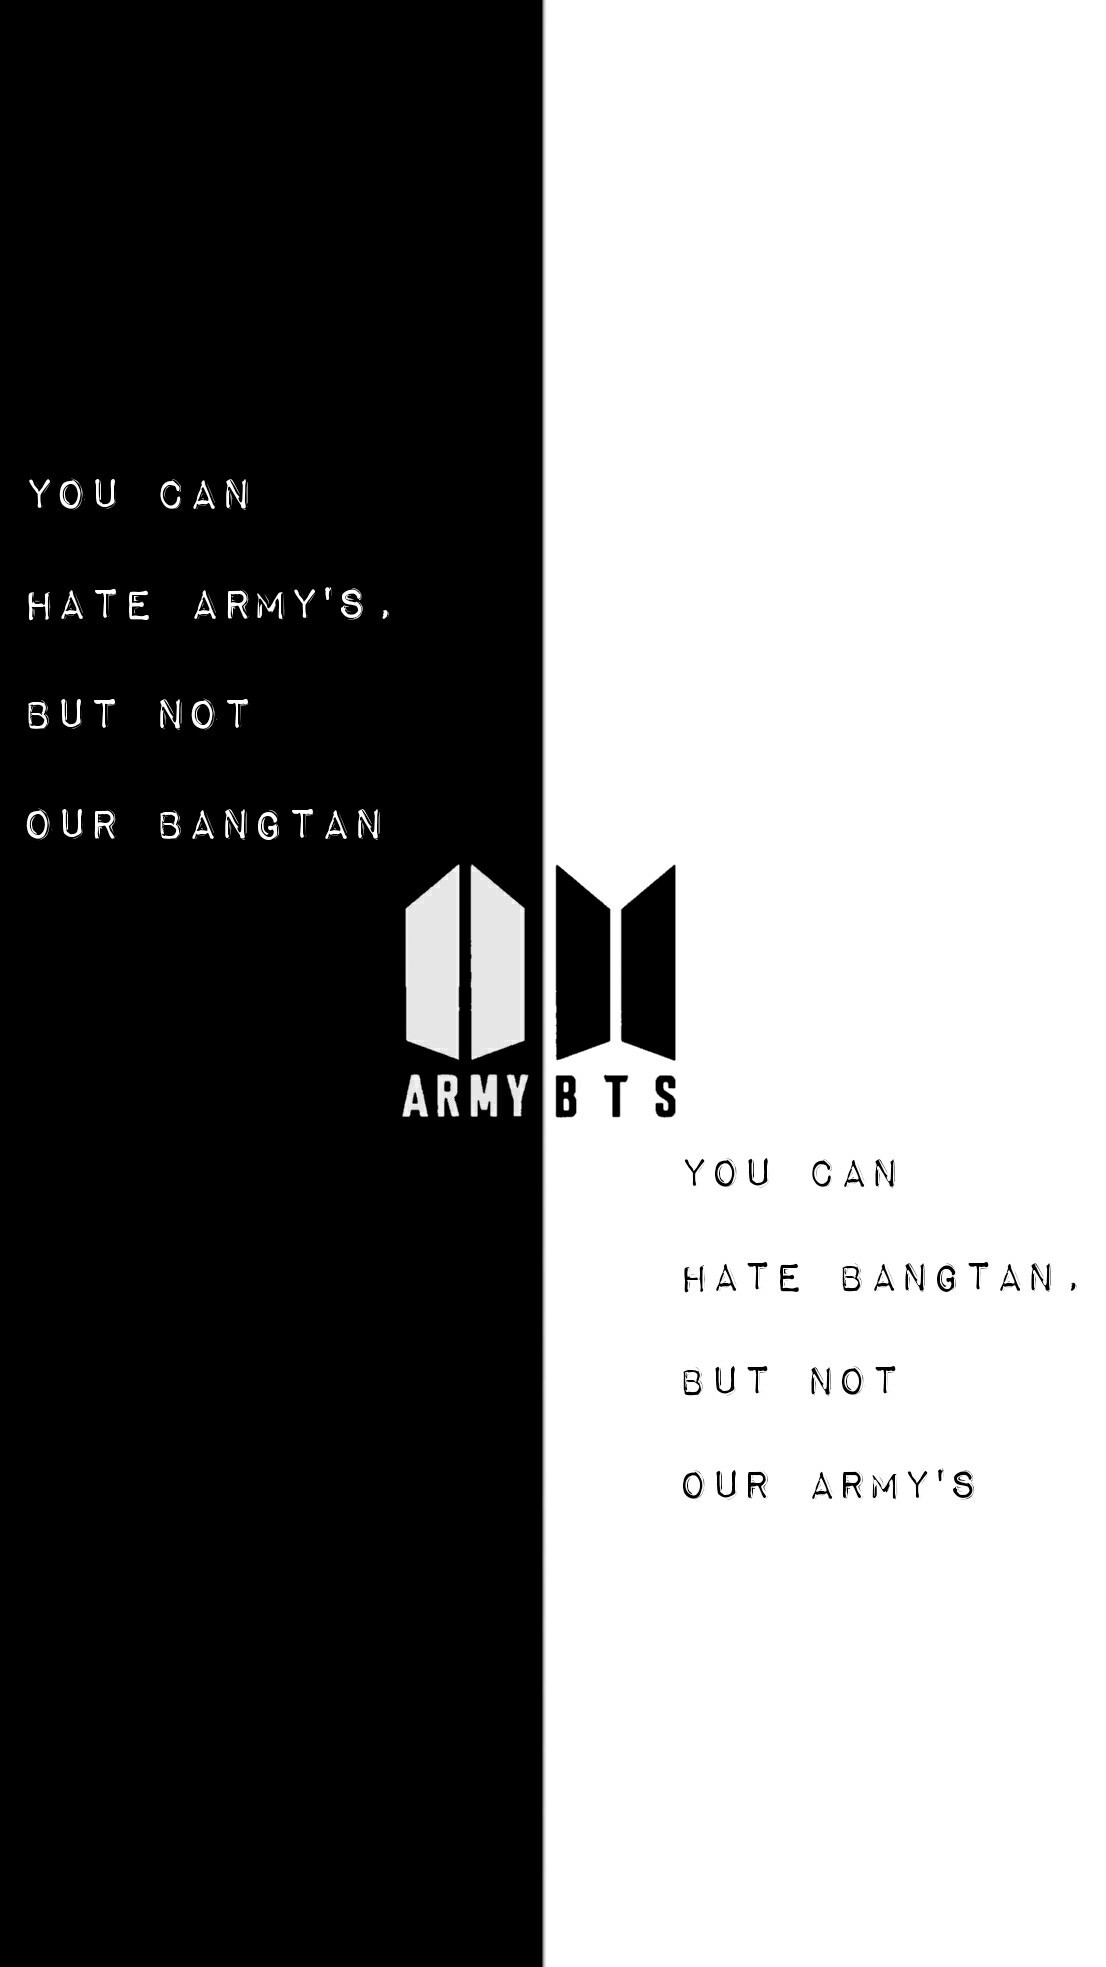 Bts Wallpaper Iphone Black And White